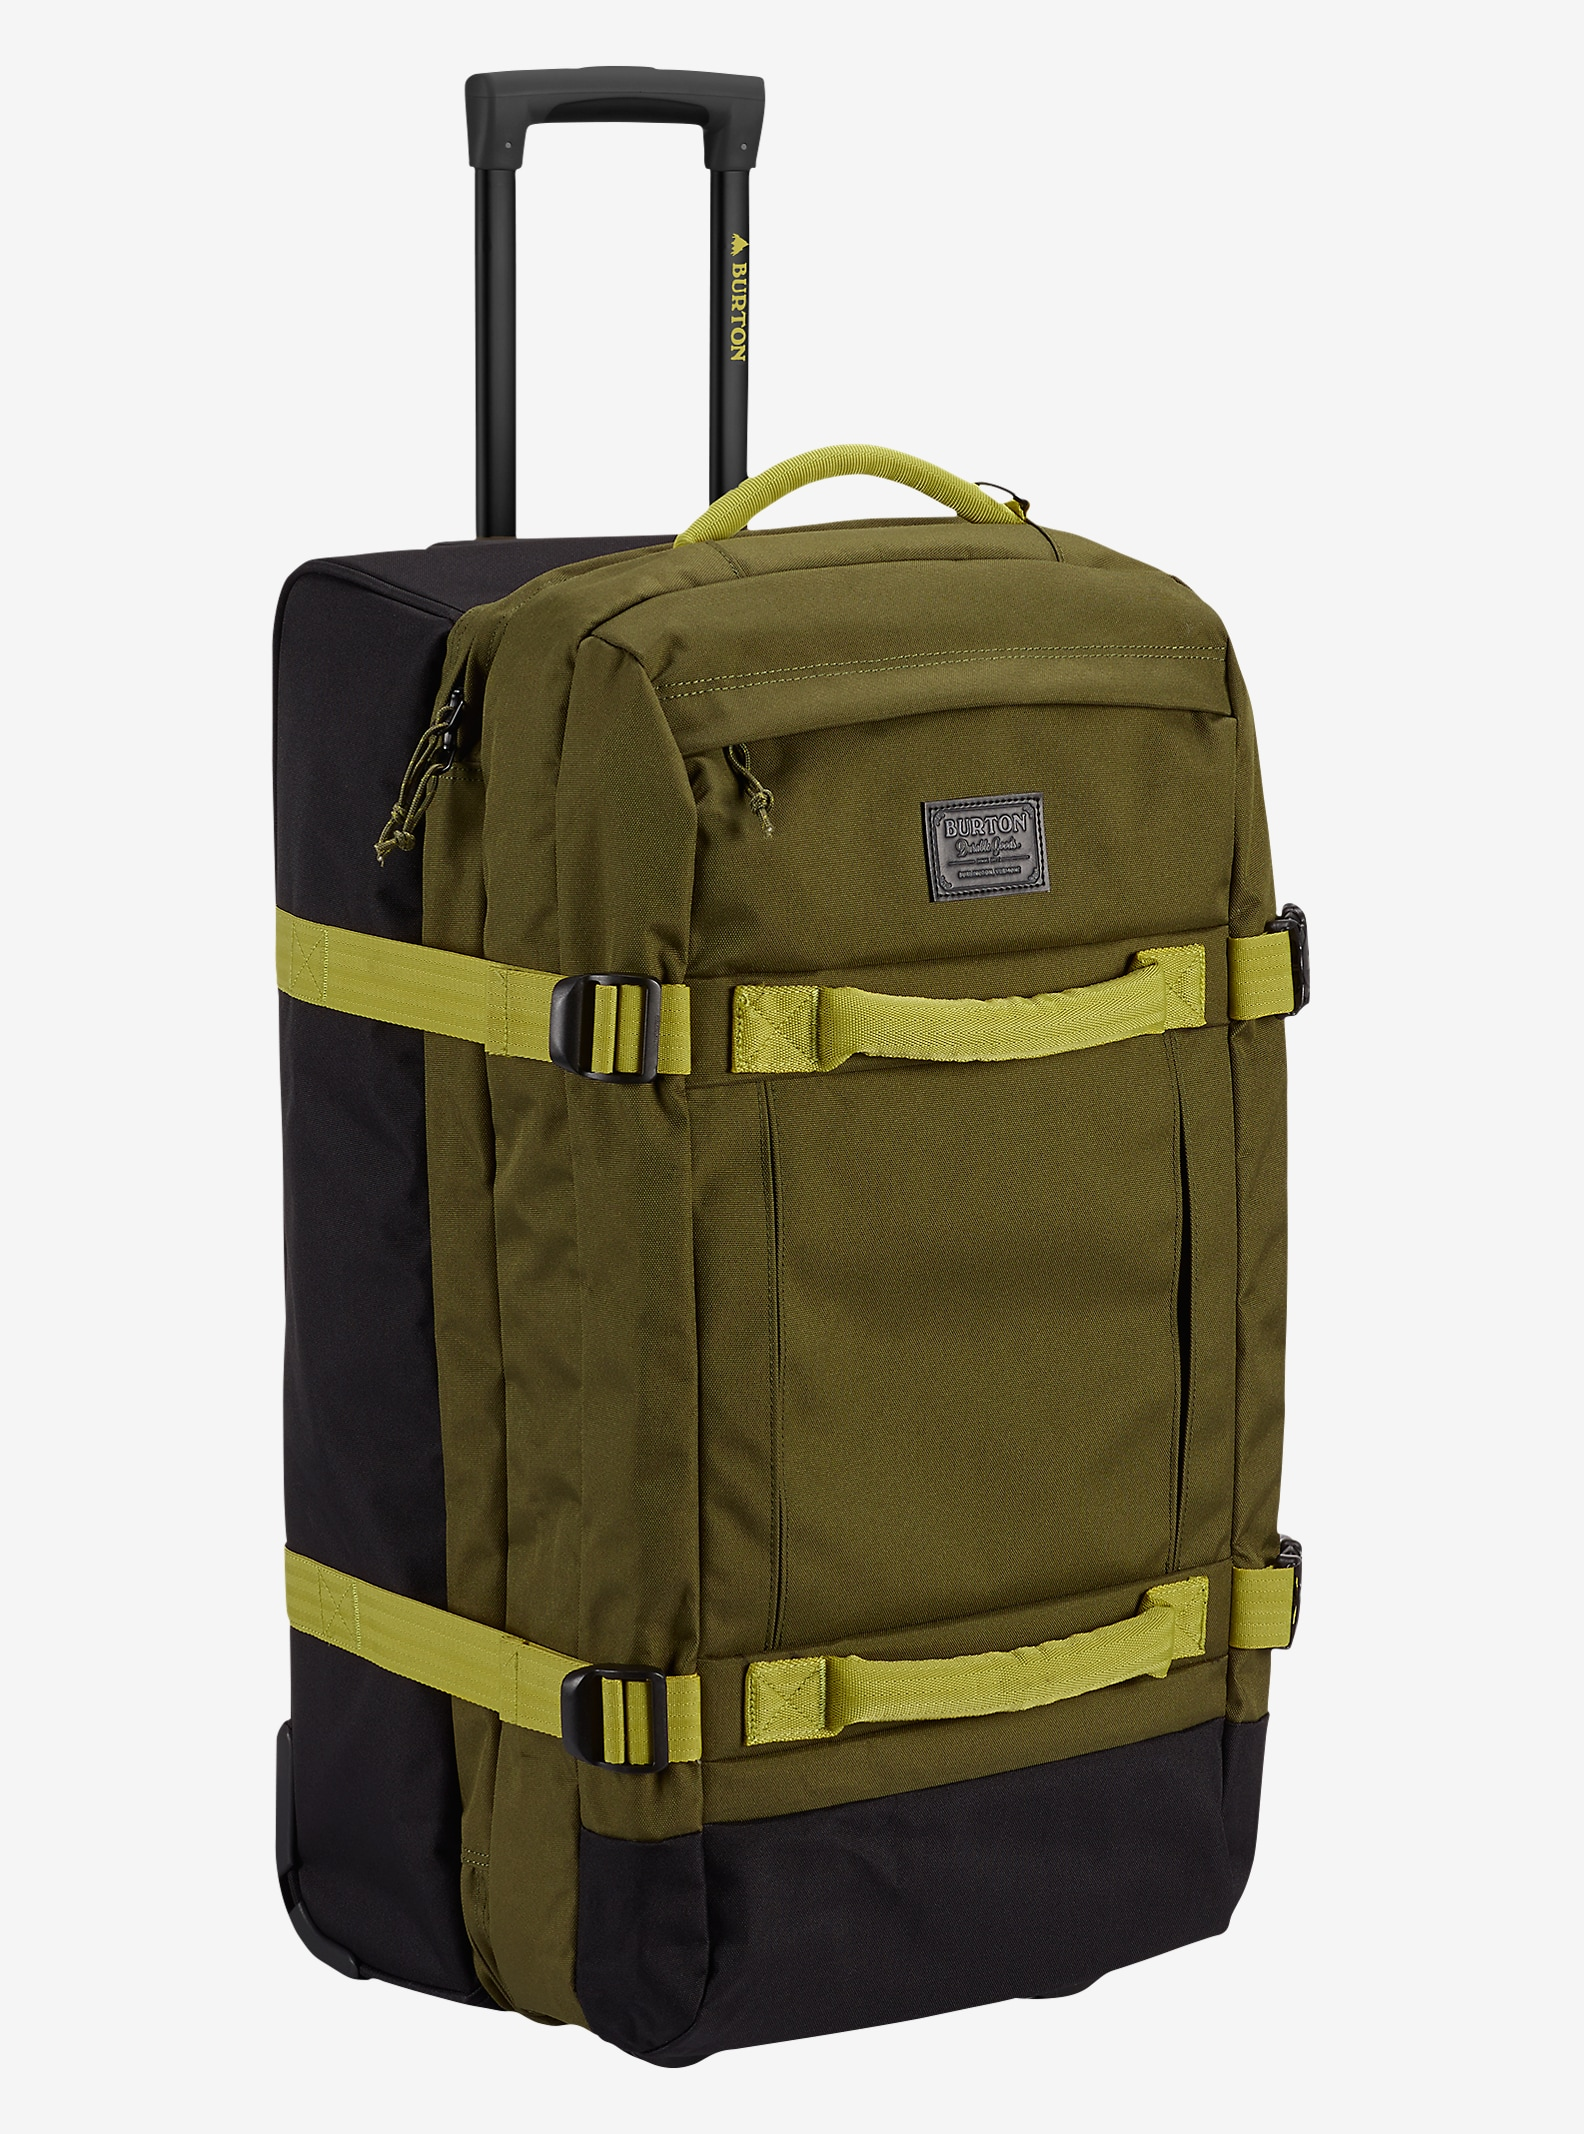 Burton Convoy Roller Travel Bag shown in Jungle [bluesign® Approved]